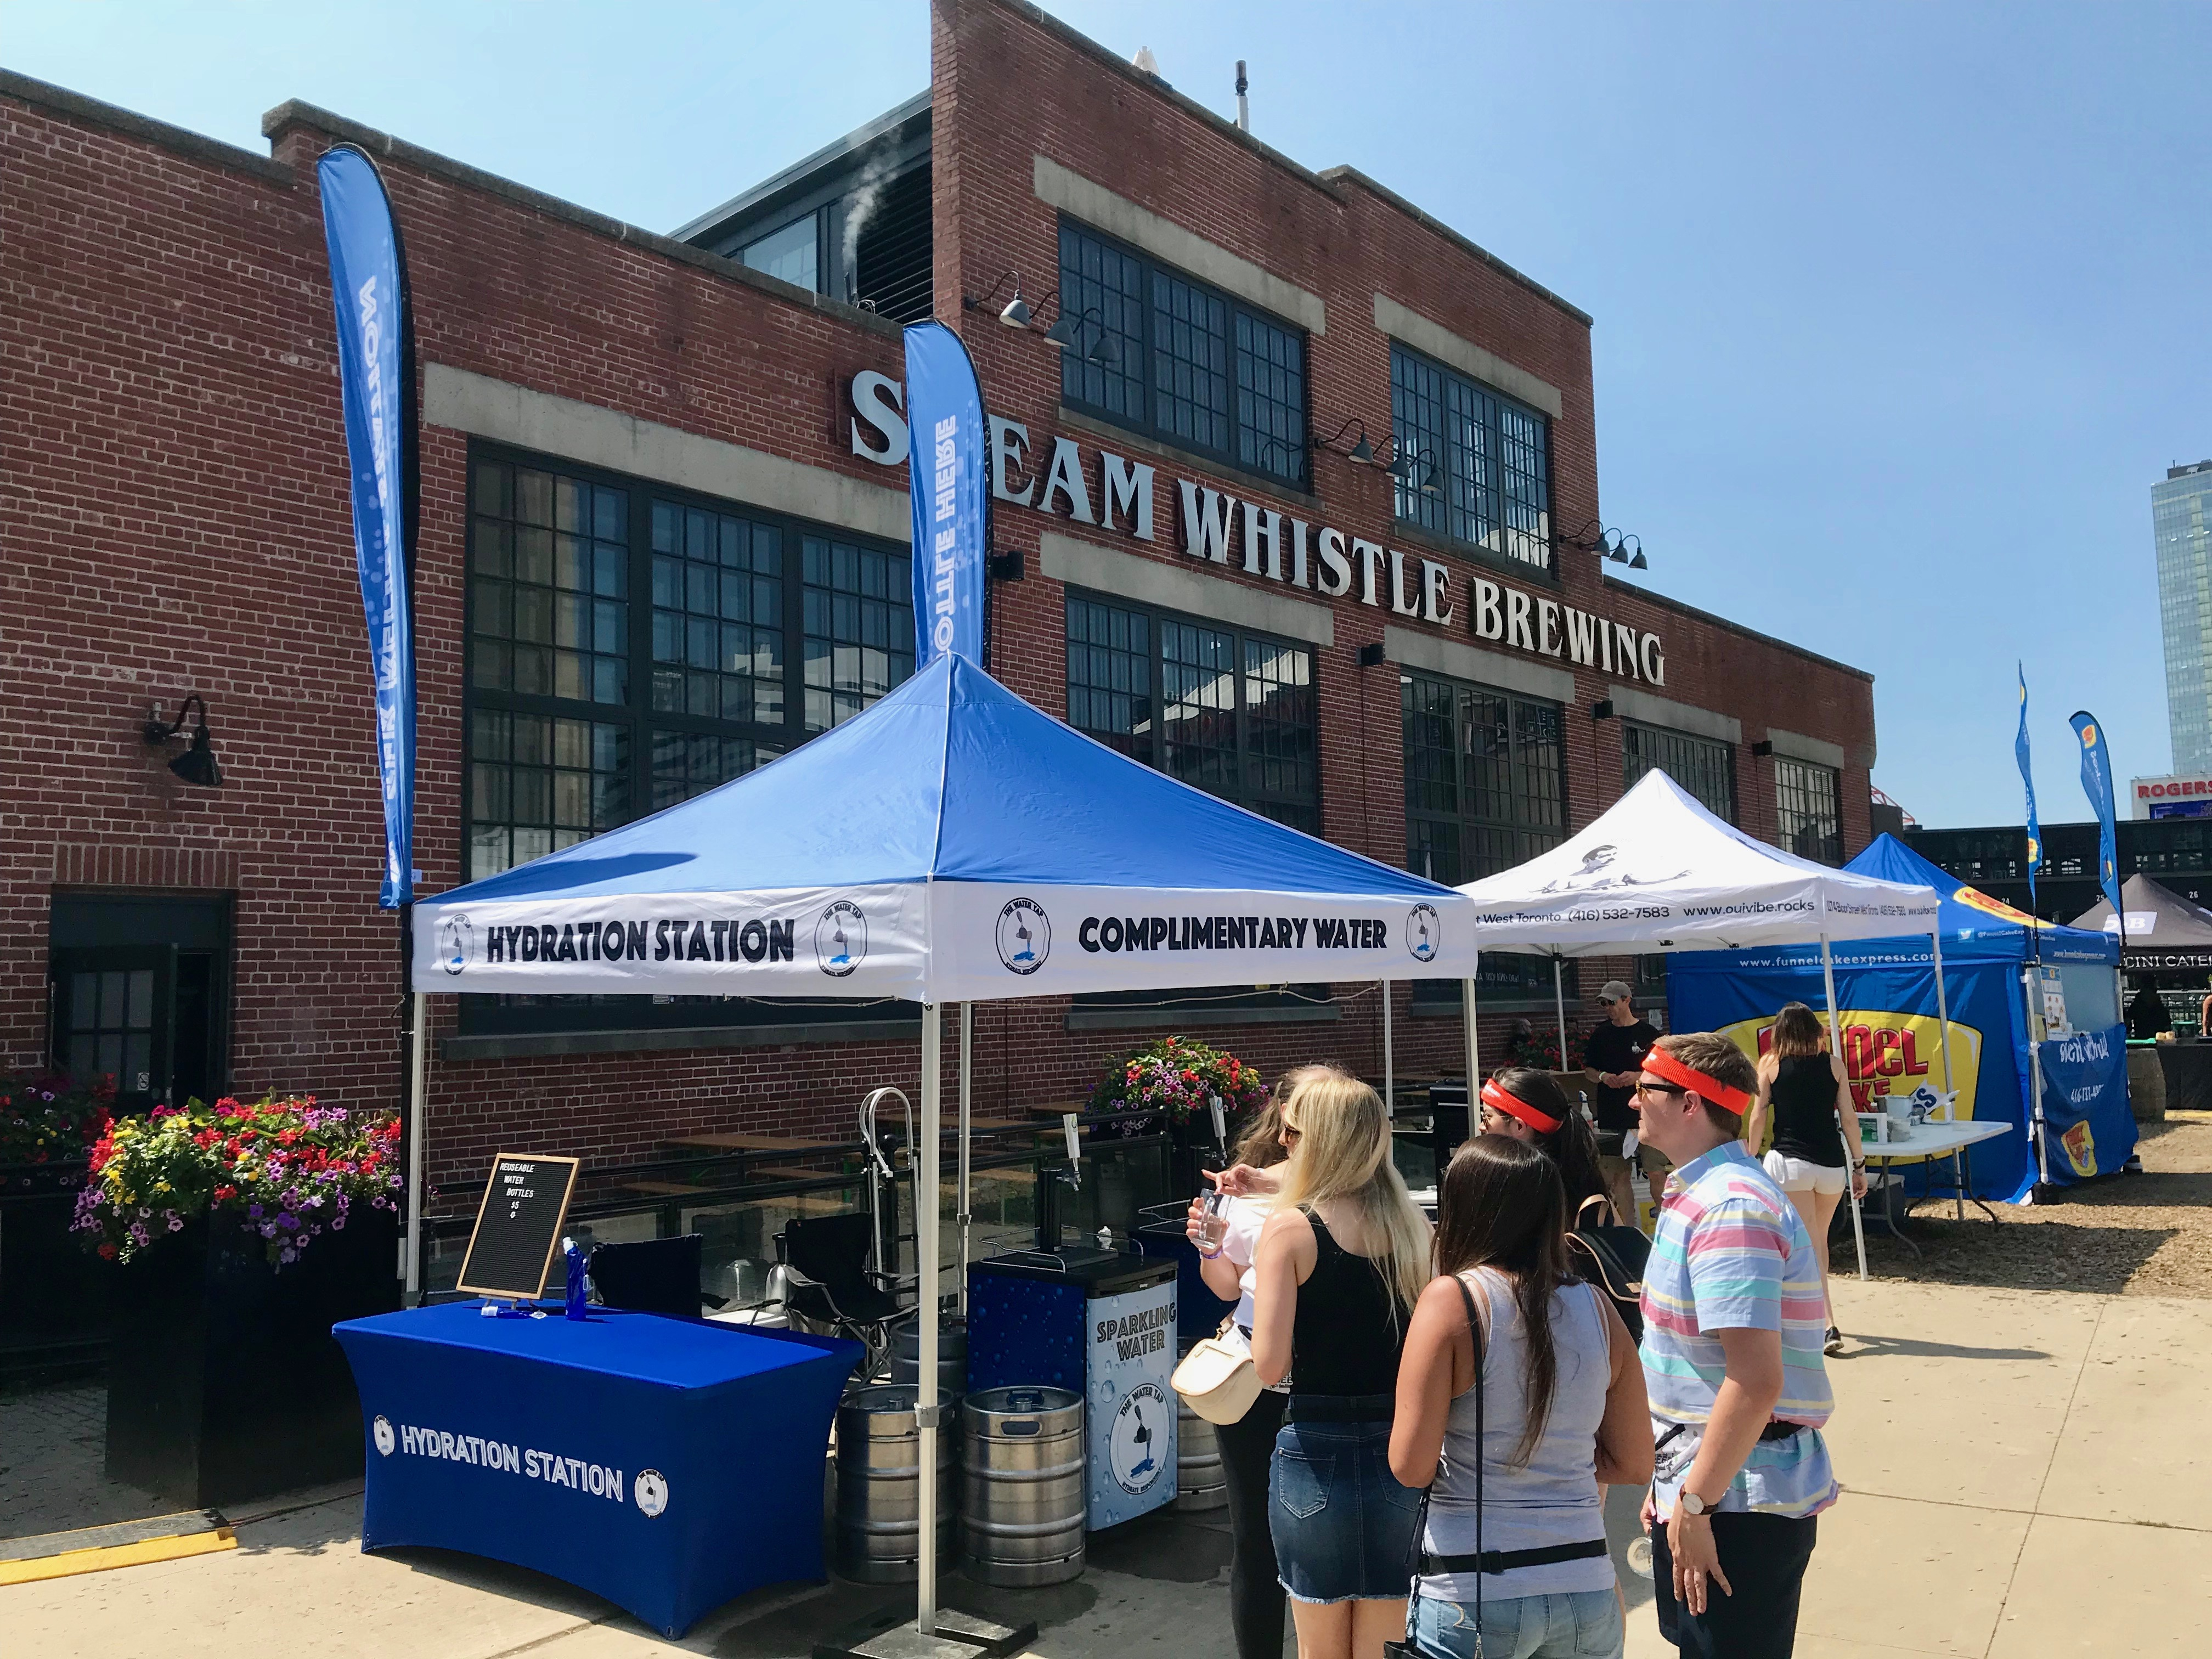 Steam Whistle Roundhouse Craft Beer